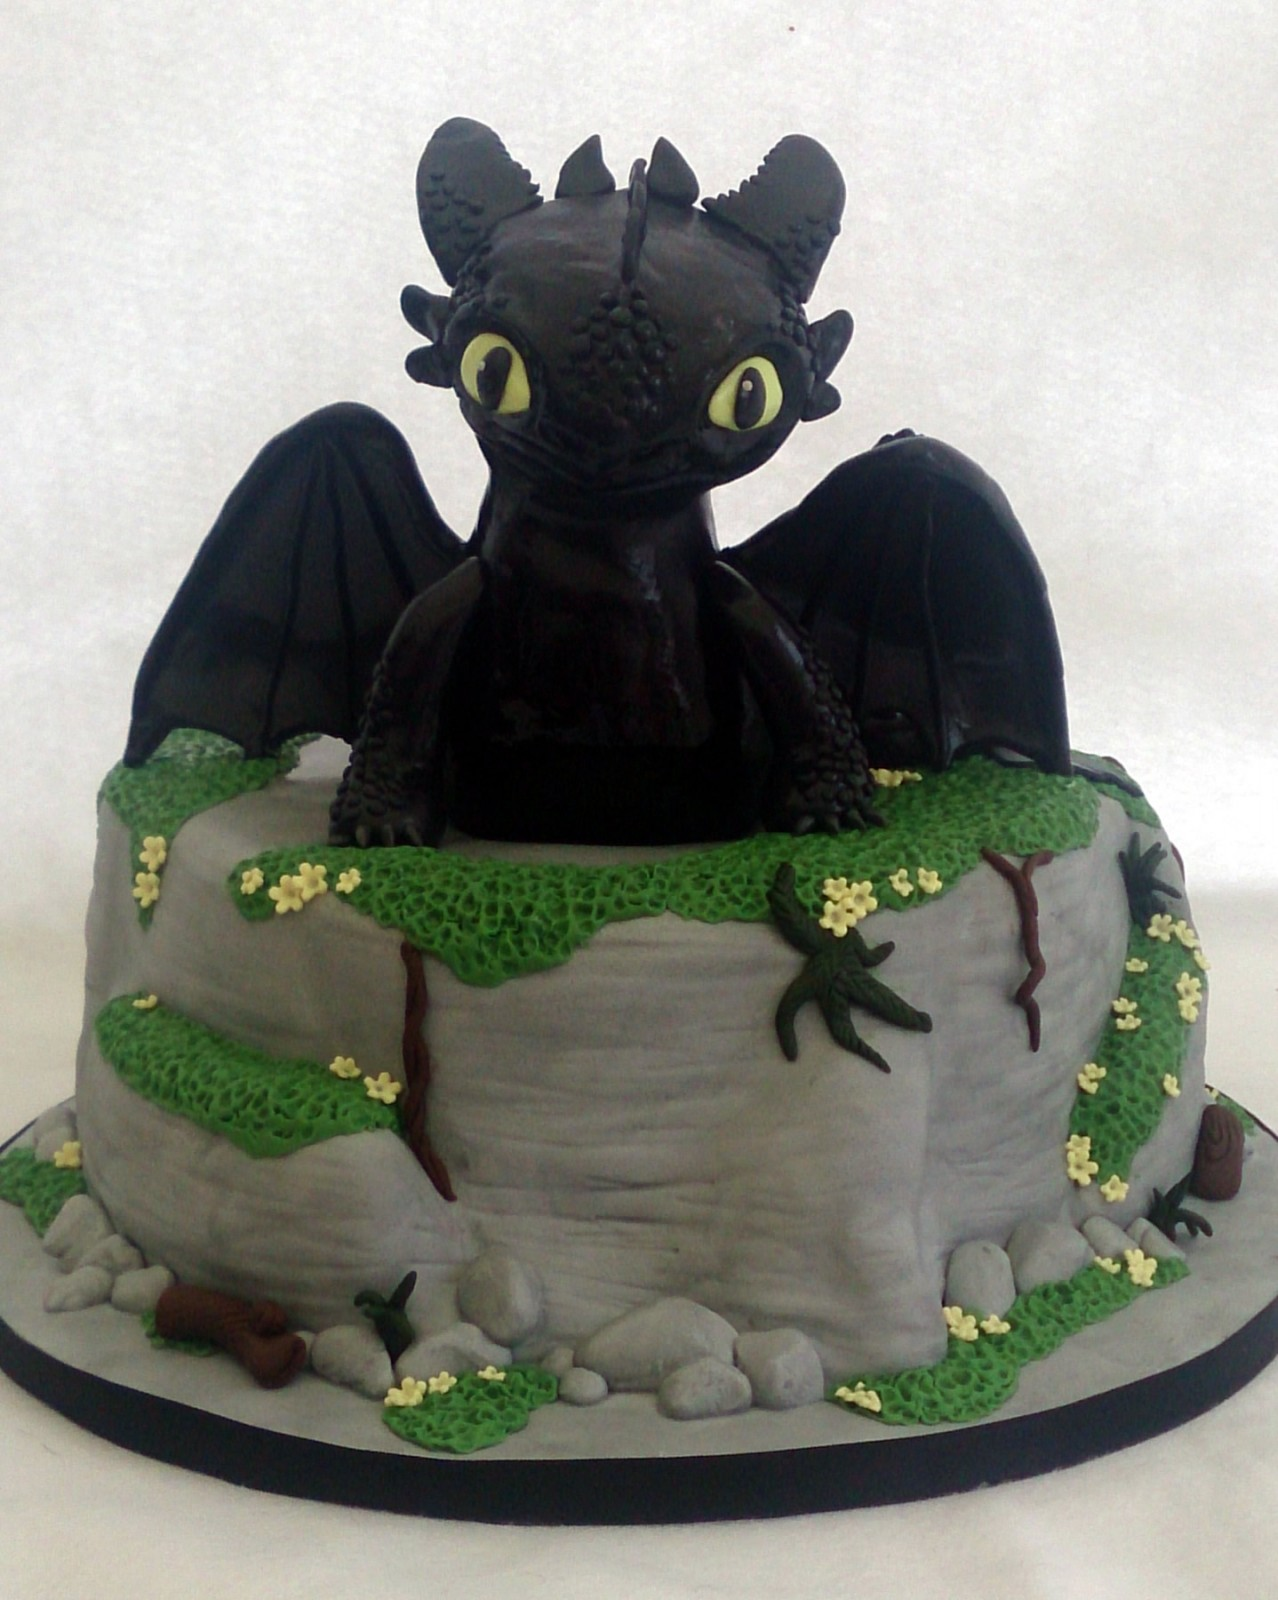 Cake Design Dragon Trainer :  Toothless  The Dragon Birthday Cake   Susie s Cakes